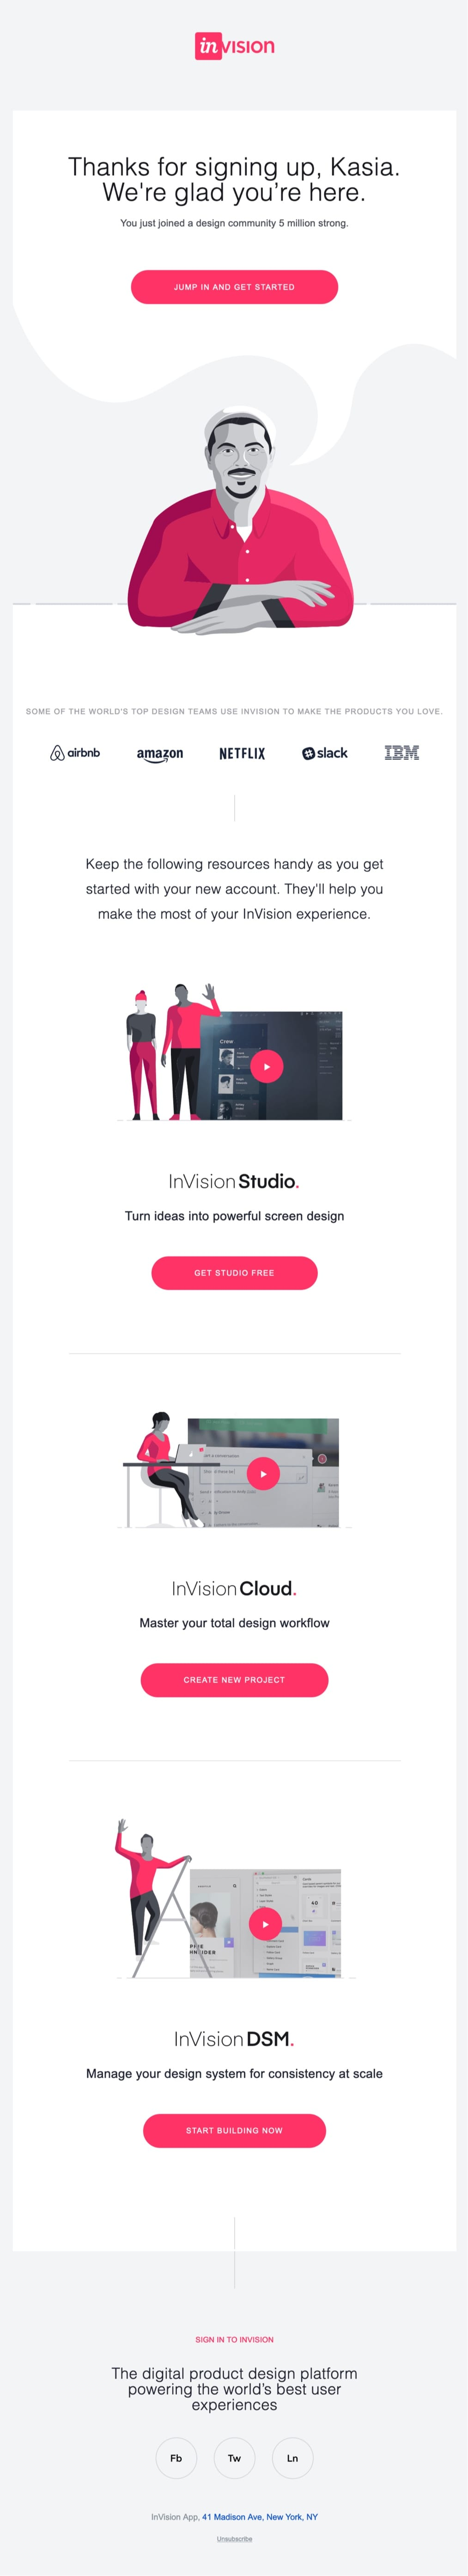 email-marketing-best-practices-invision